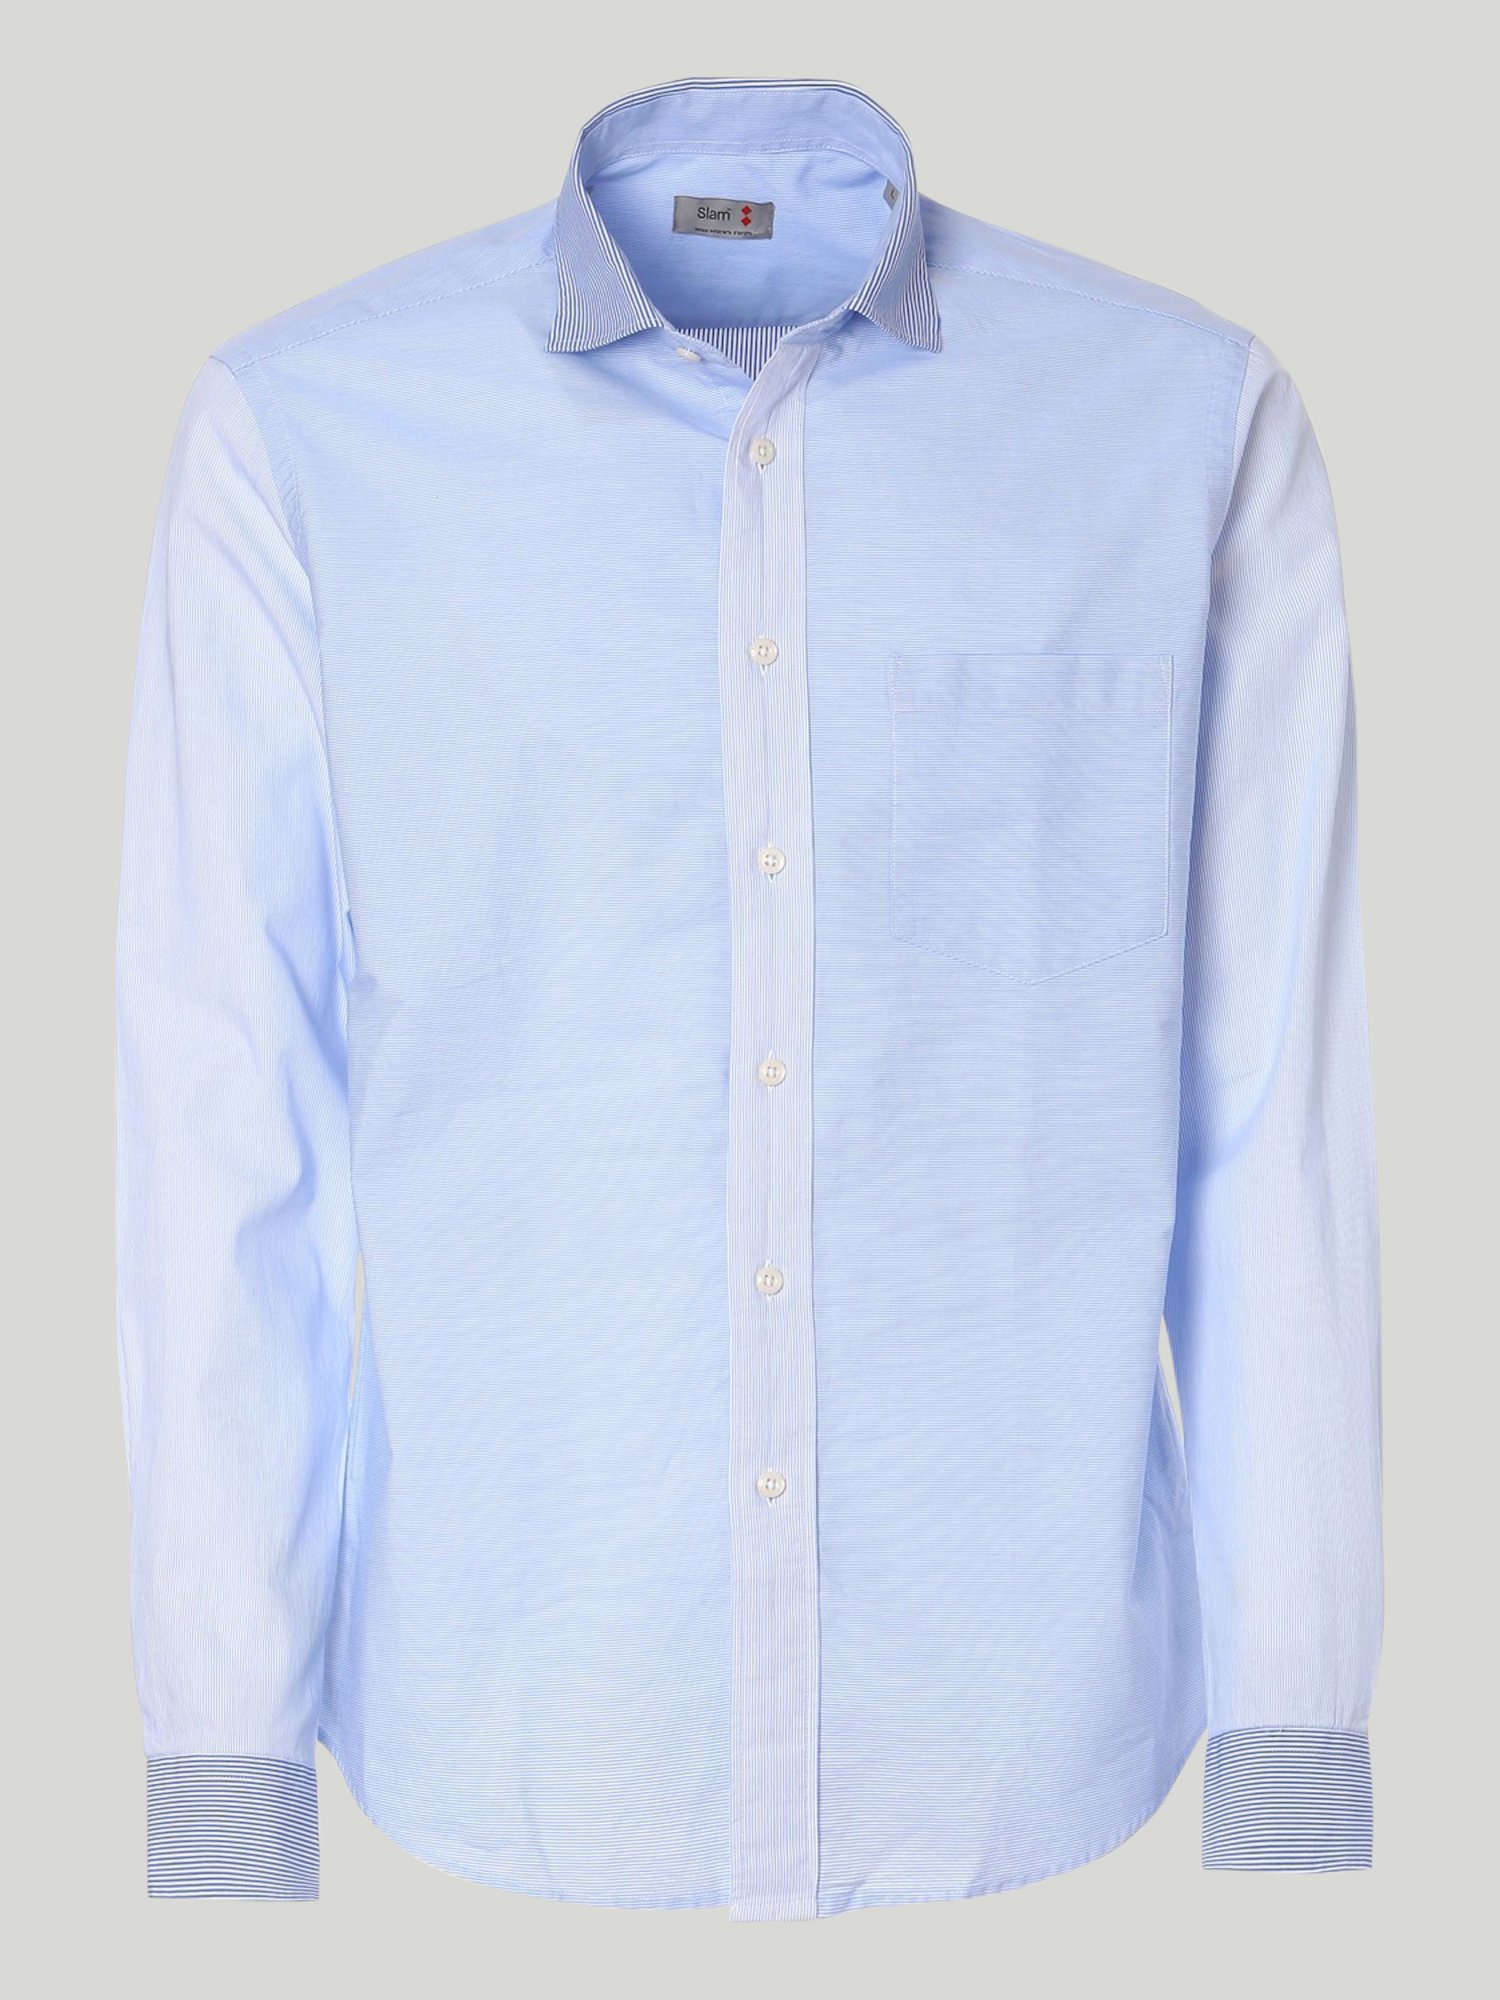 Eso shirt - Striped White / Light Blue